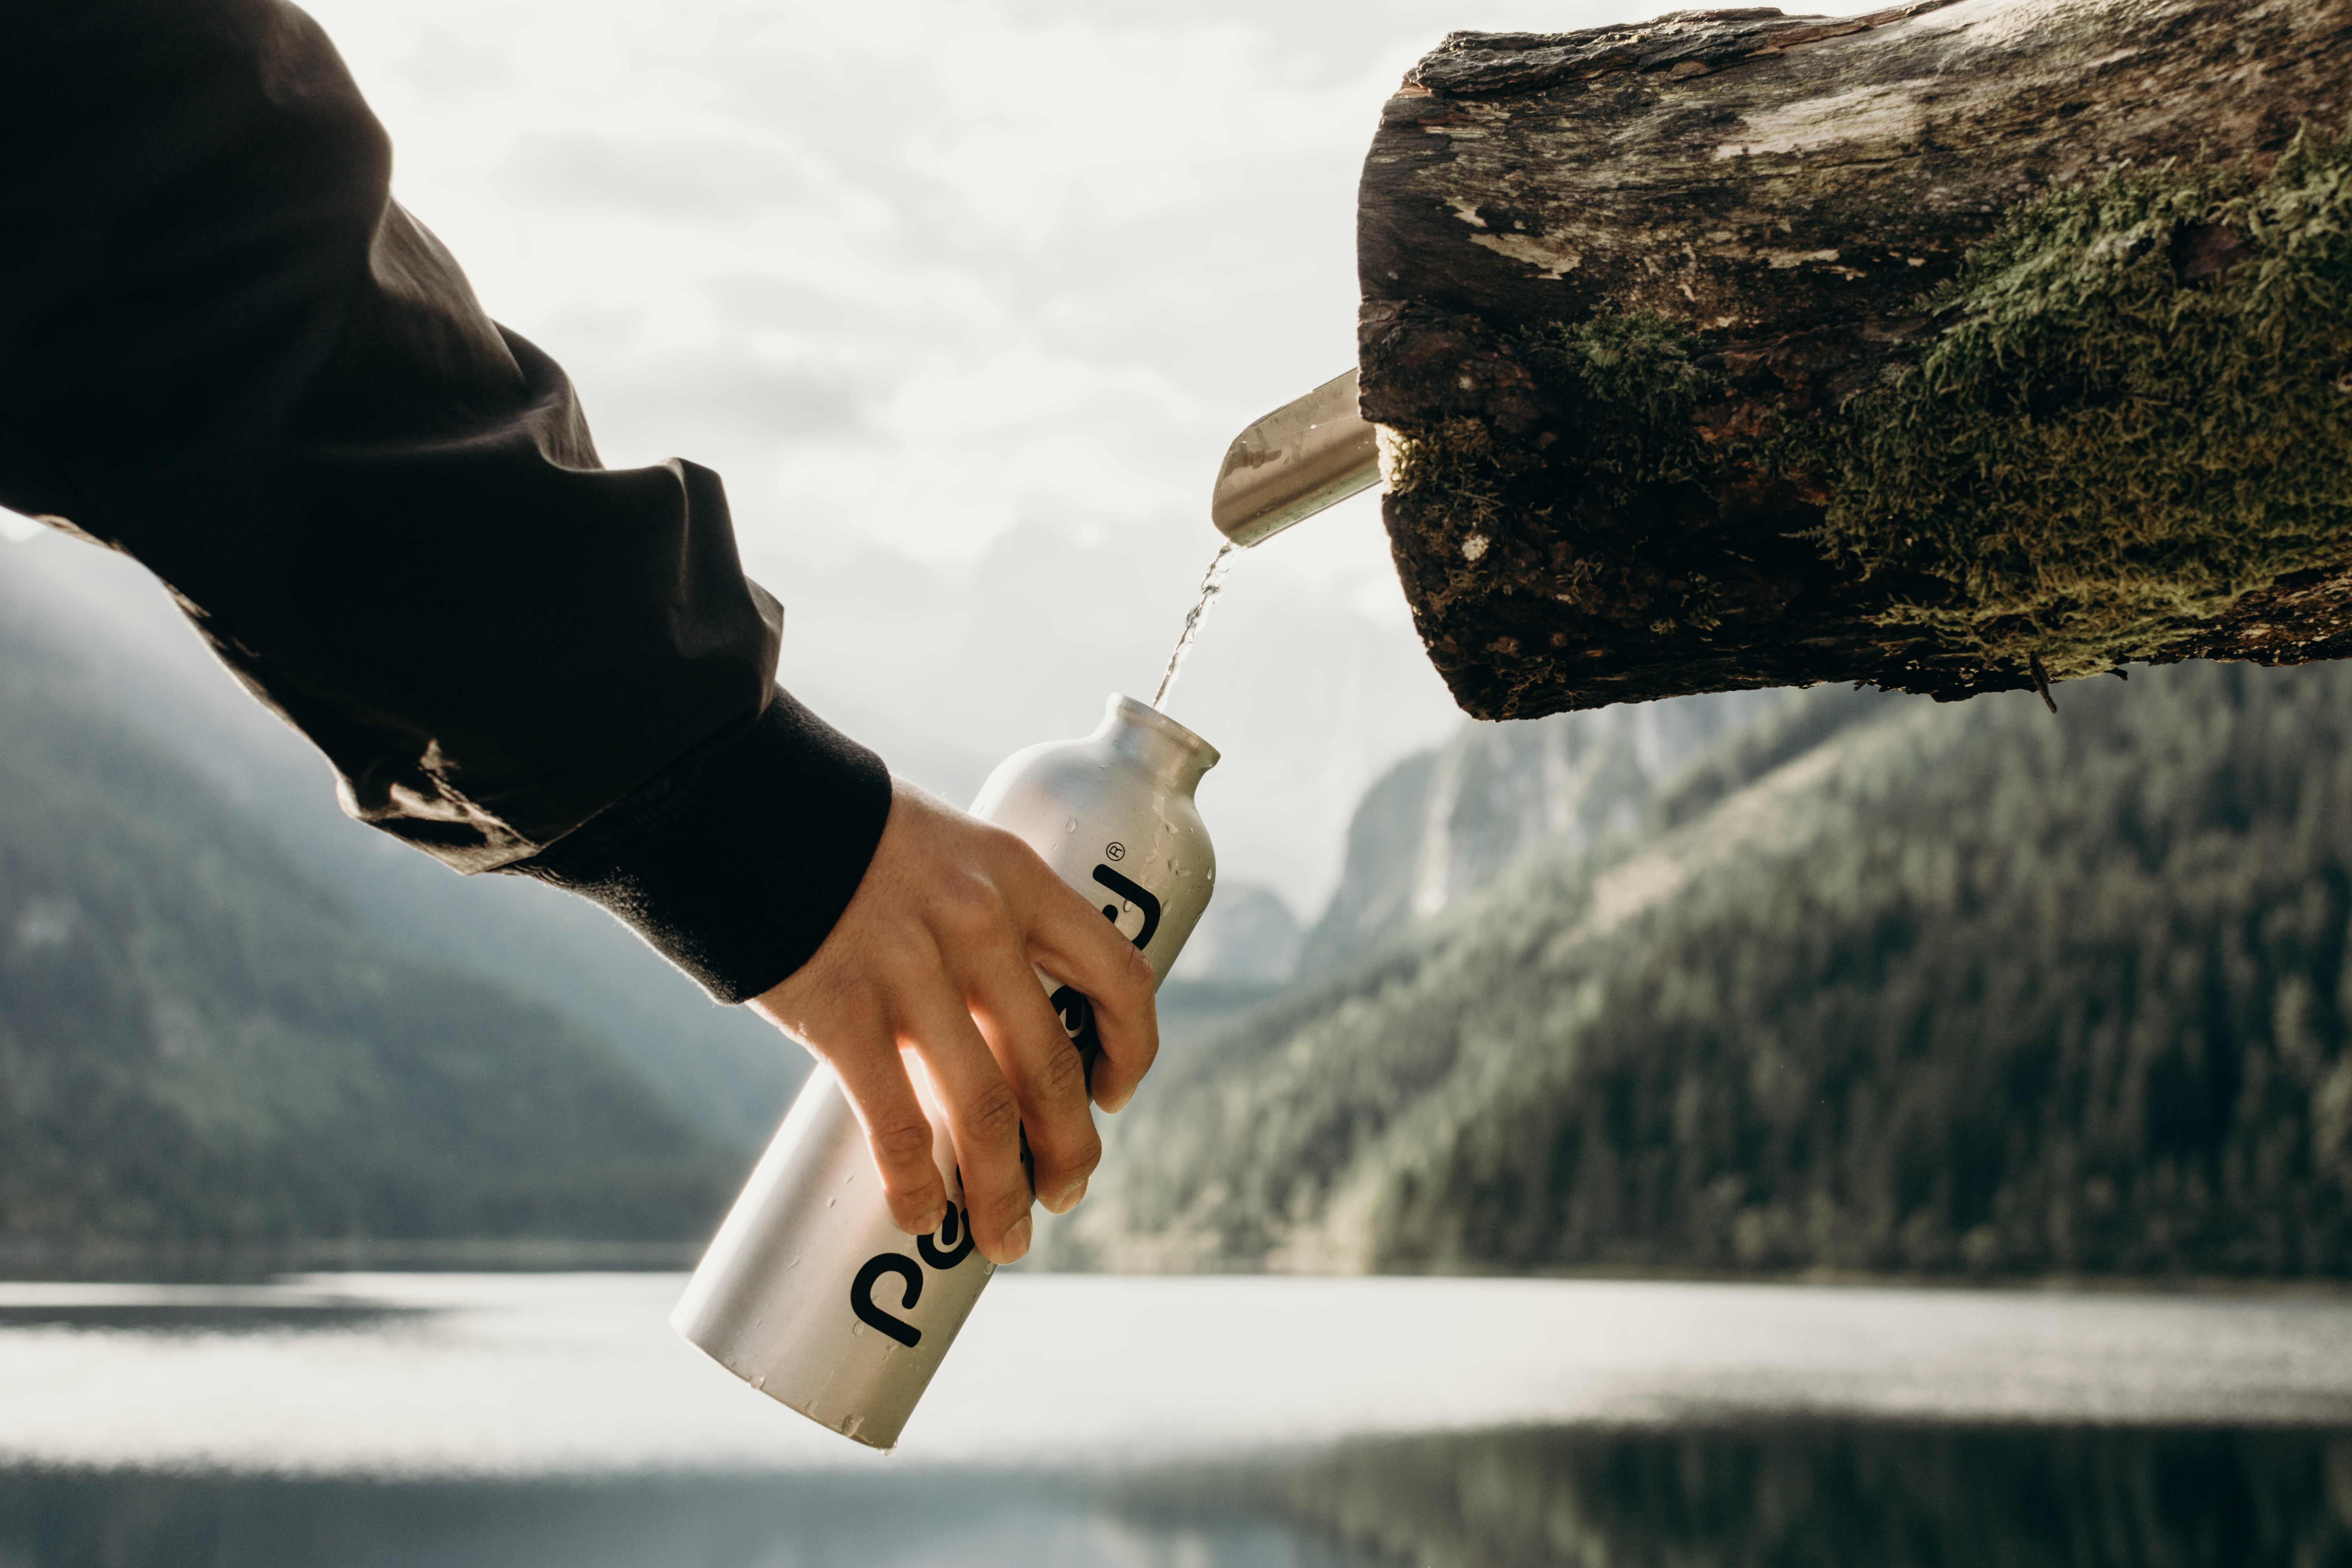 person holding gray sports bottle near nozzle